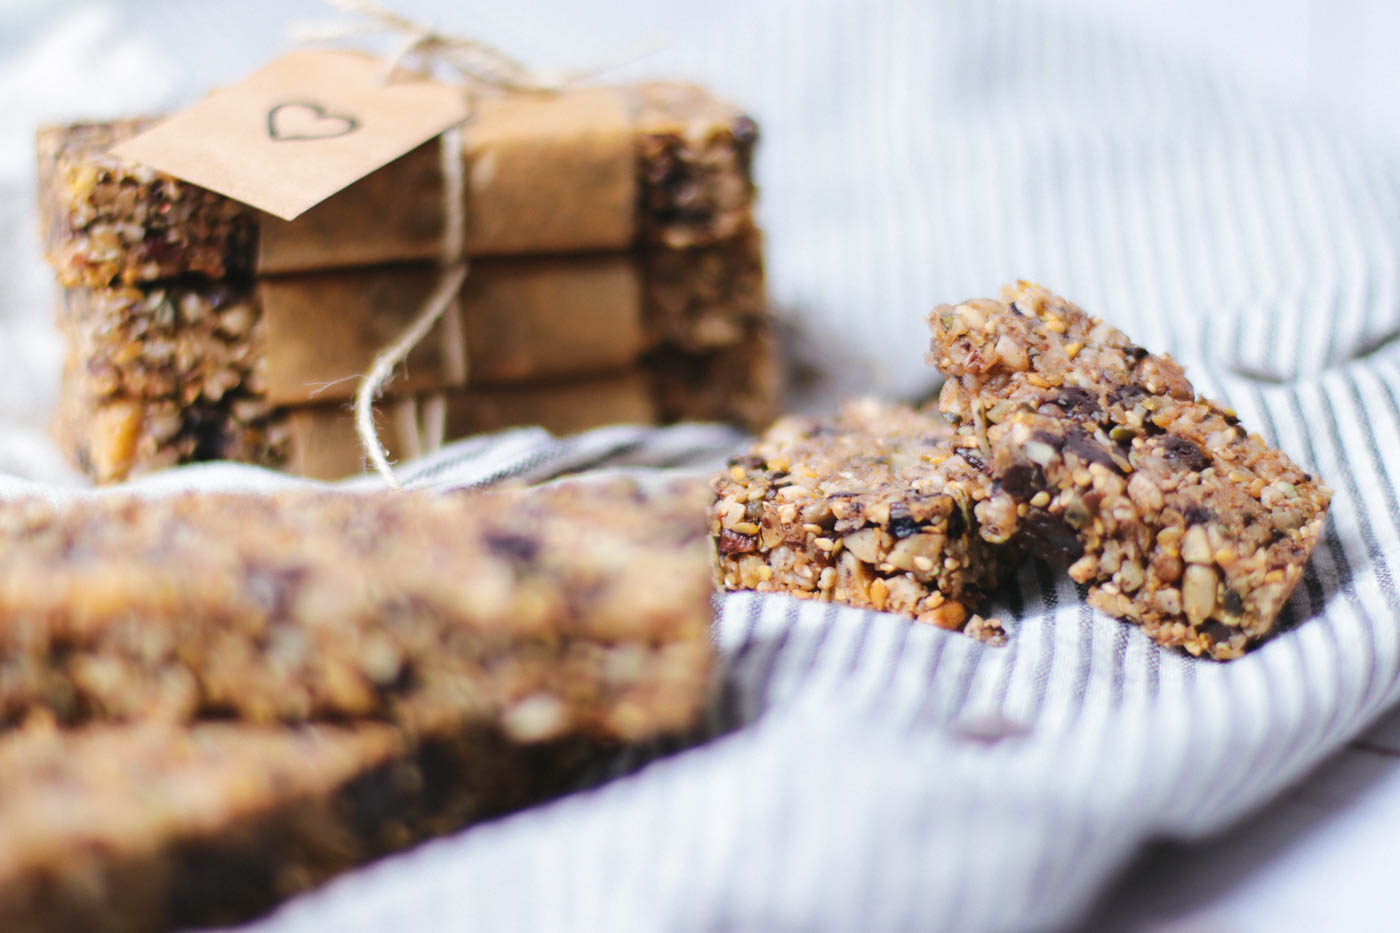 Low carb granola bar